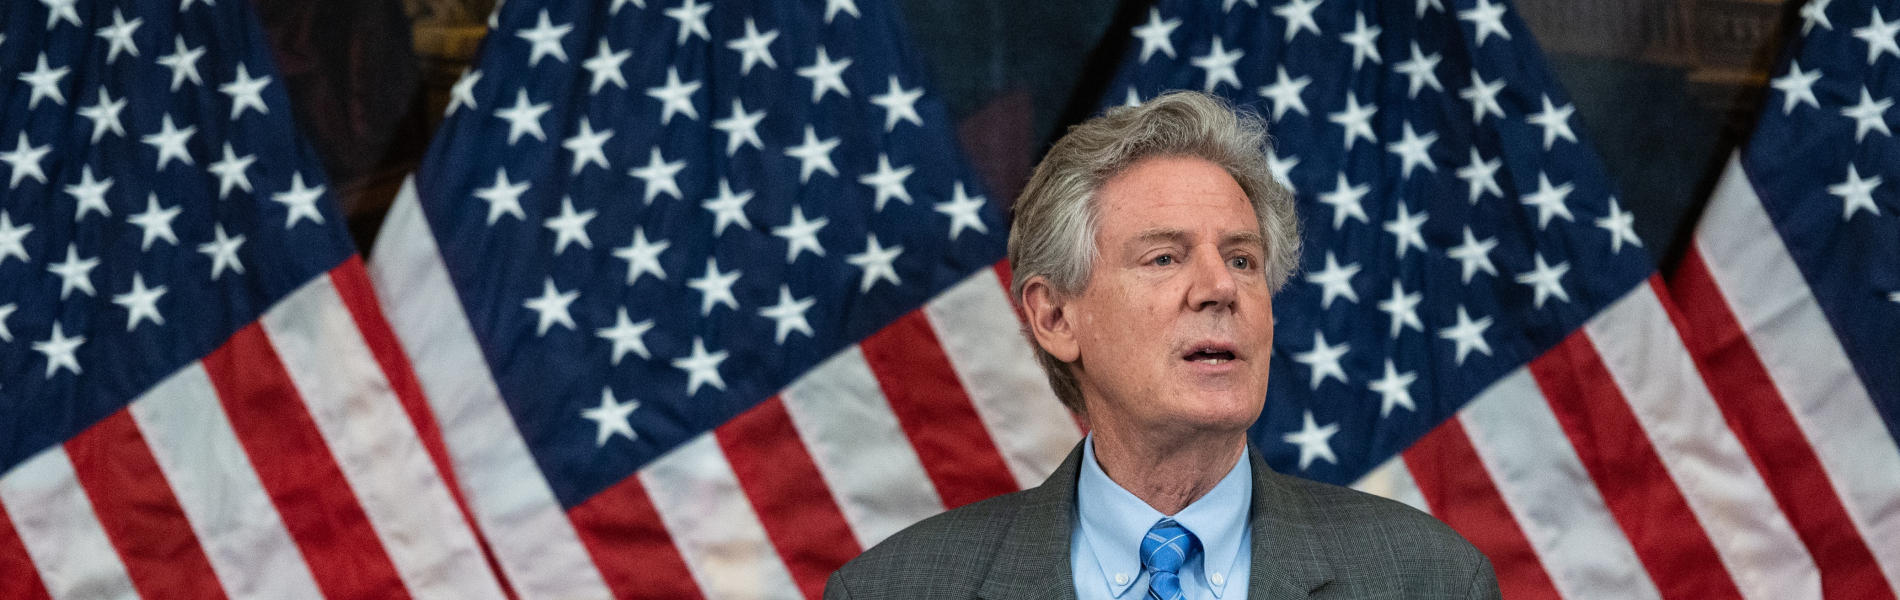 Frank Pallone Affordable Care Act